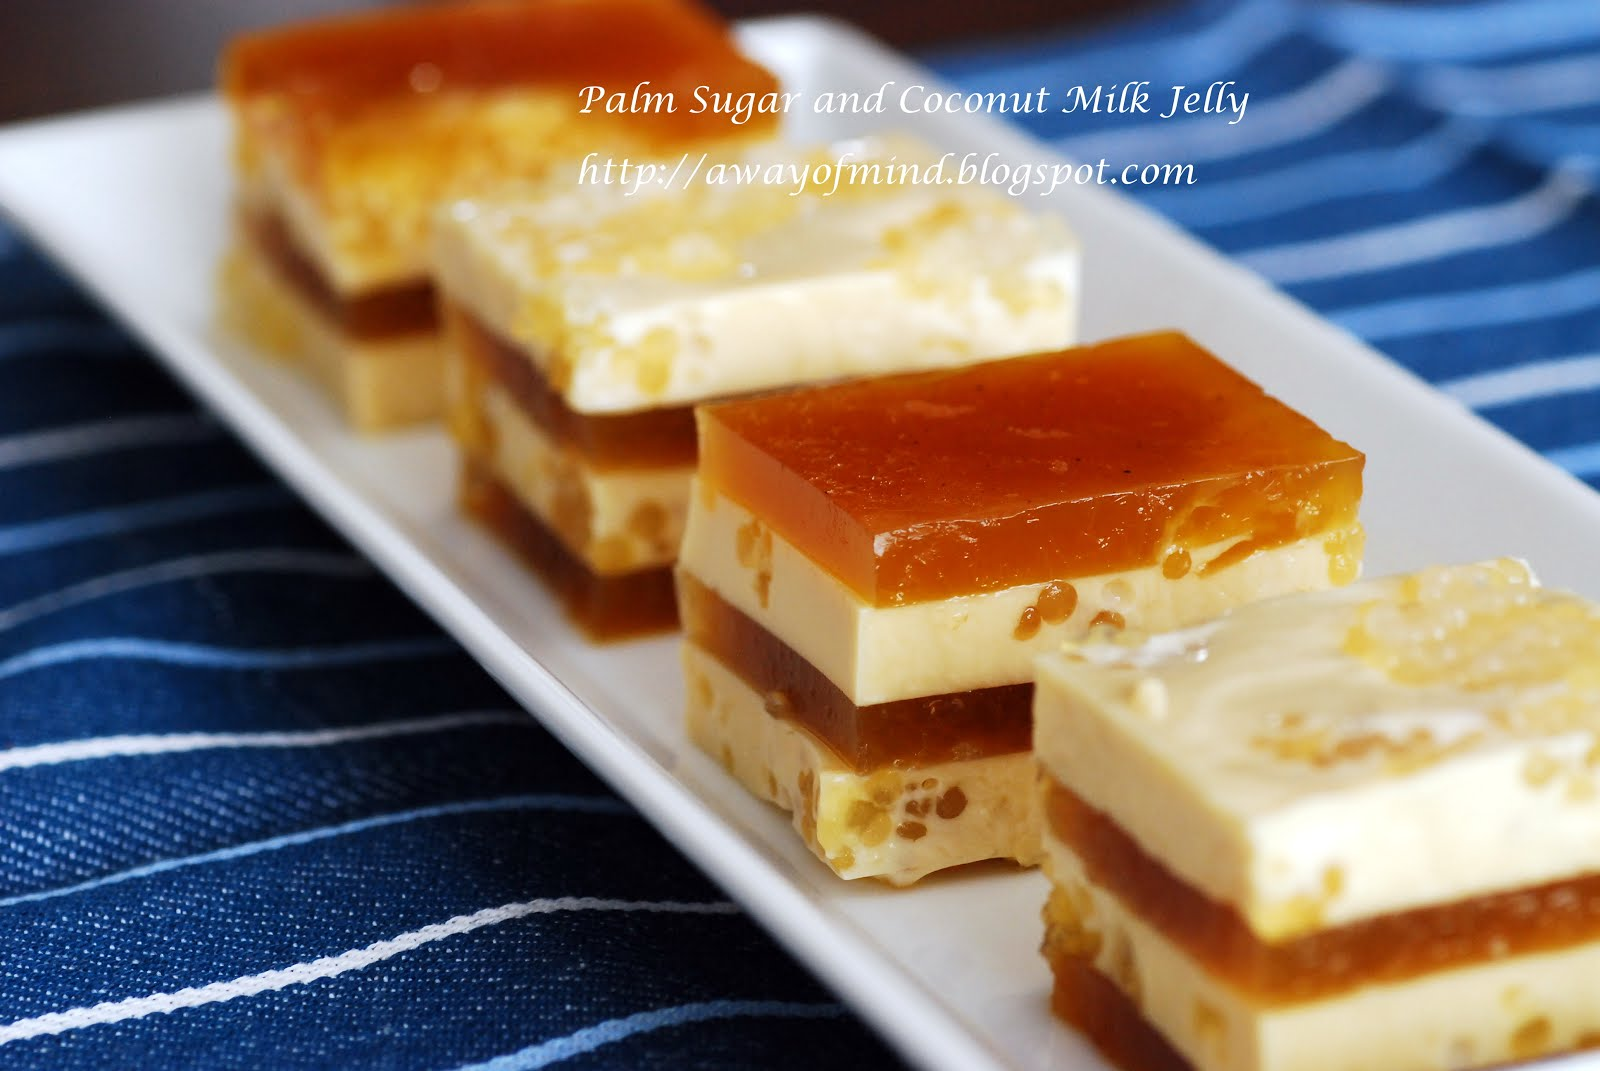 Palm Sugar and Coconut Milk Jelly